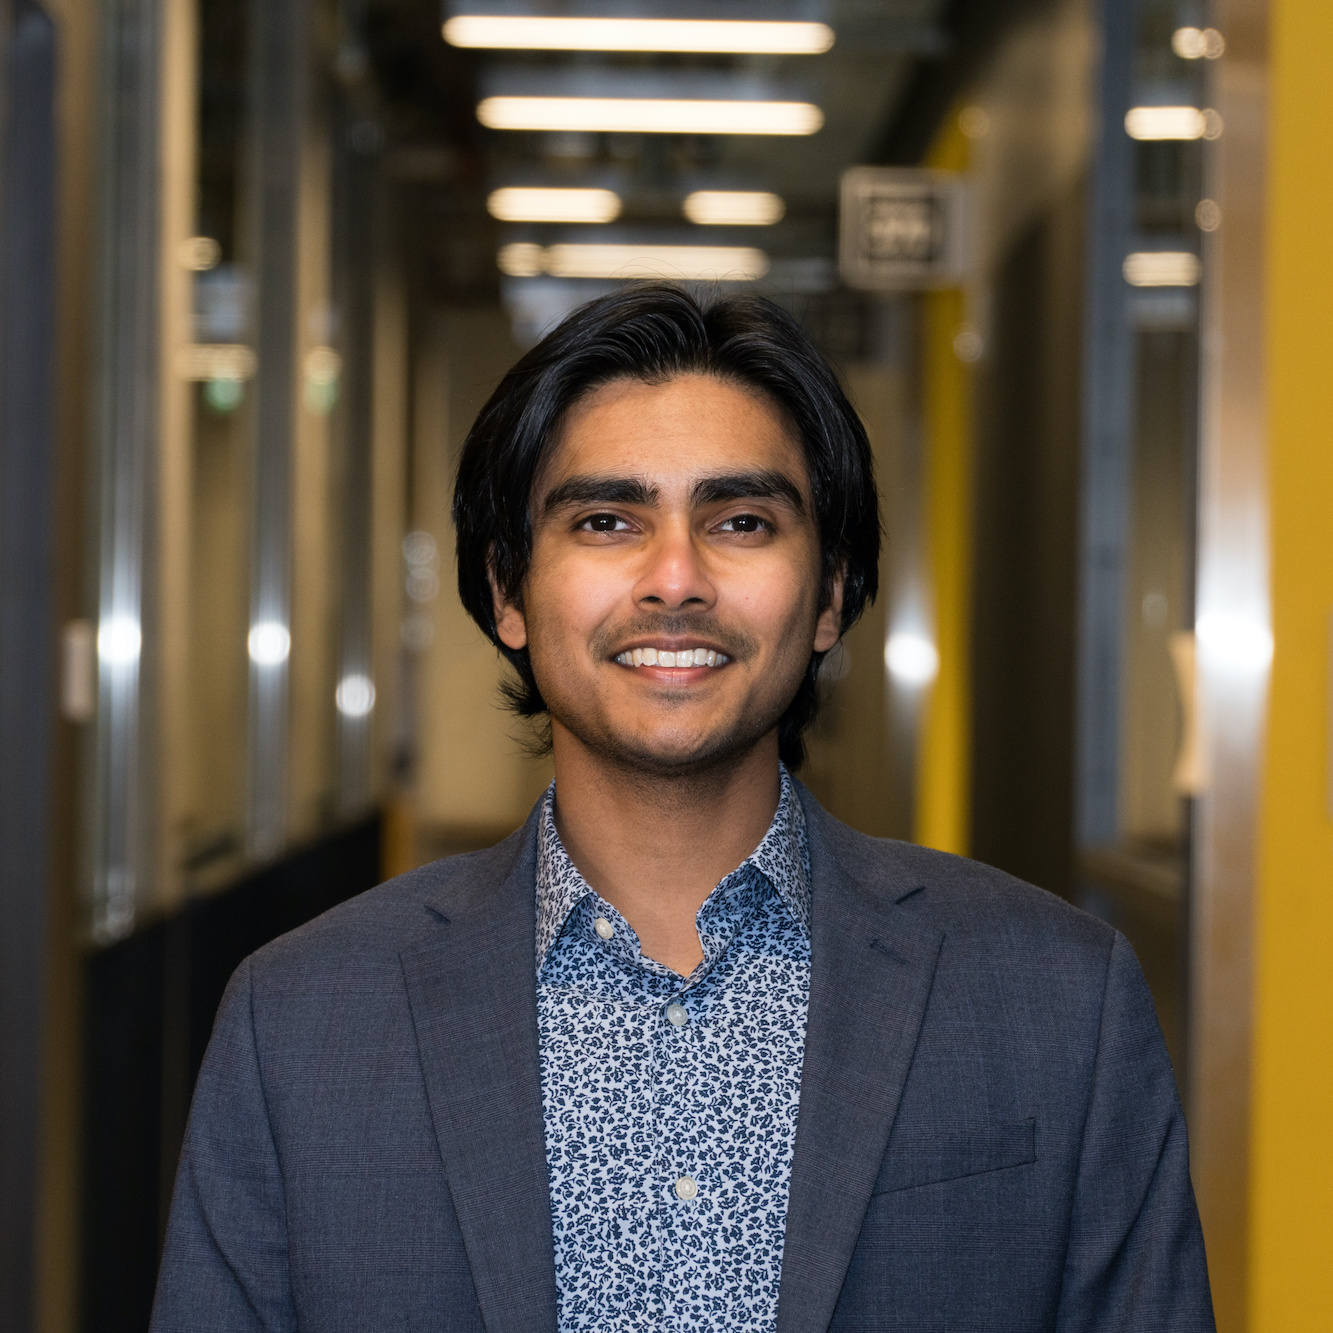 Master's student Rabib Islam is seen from the chest up, wearing a light blue patterned shirt and a grey blazer. We see a corridor of the uOttawa Stem Complex behind him